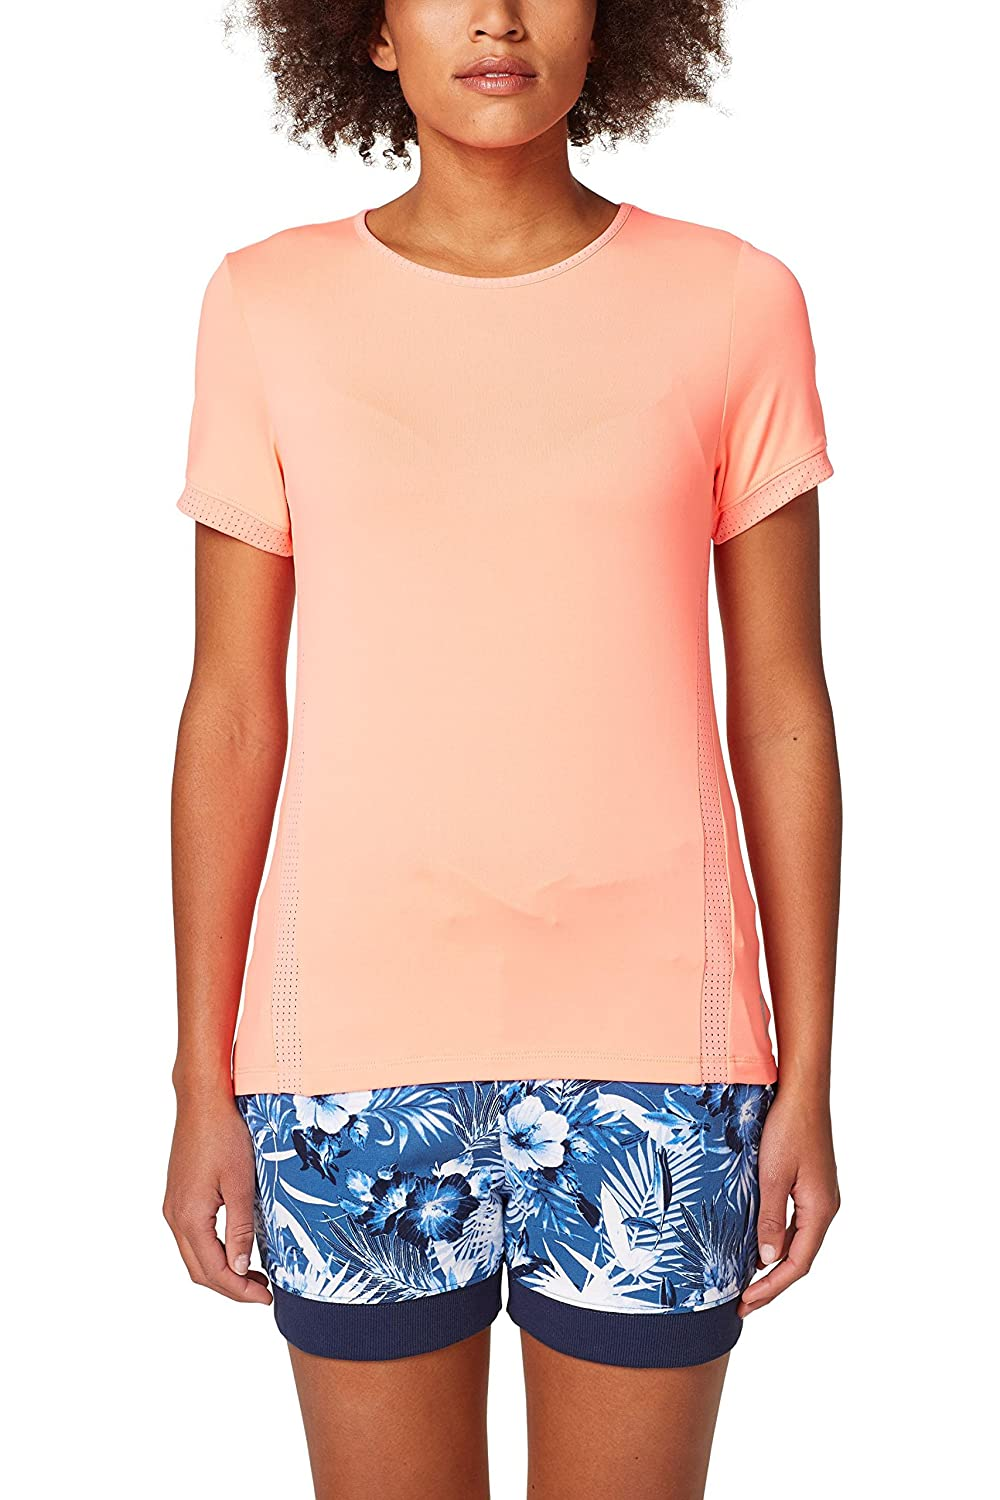 ESPRIT Sports Top Deportivo para Mujer